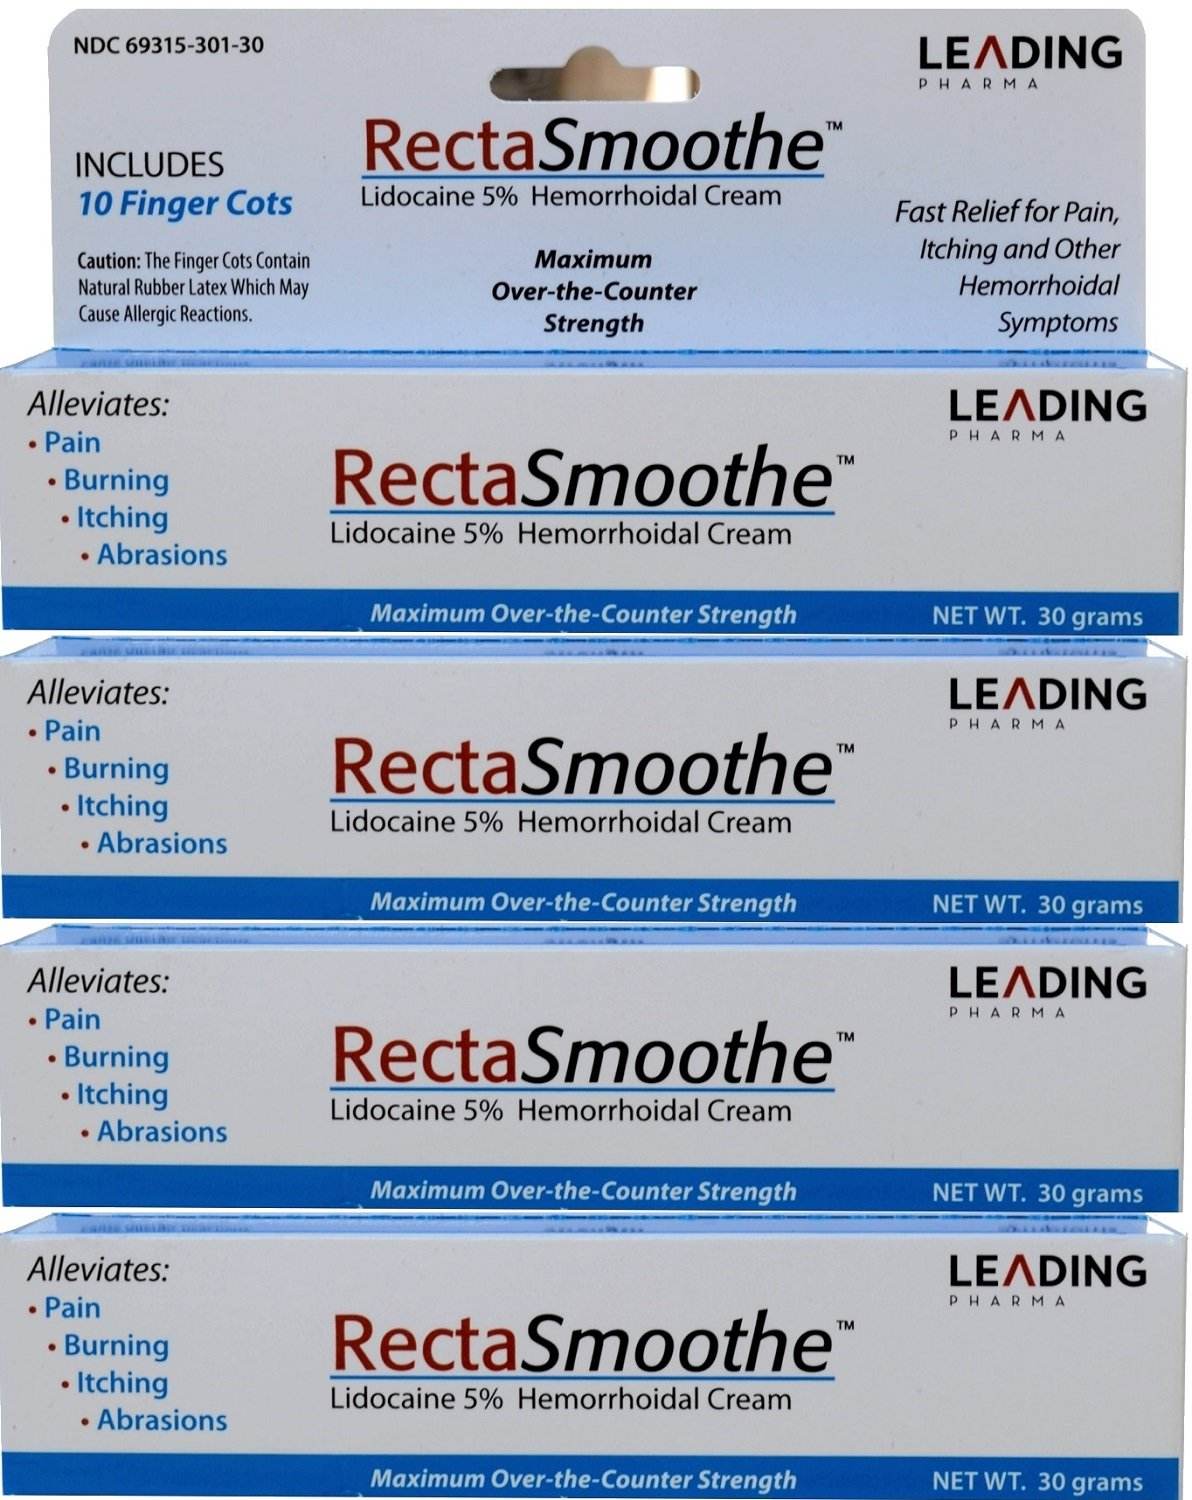 RectaSmoothe Lidocaine 5% Hemorrhoidal Anesthetic Cream, Fast Pain Relief for Hemorrhoids and Other Anorectal Disorders 1 oz. Per Tube PACK of 4 by RectaSmoothe